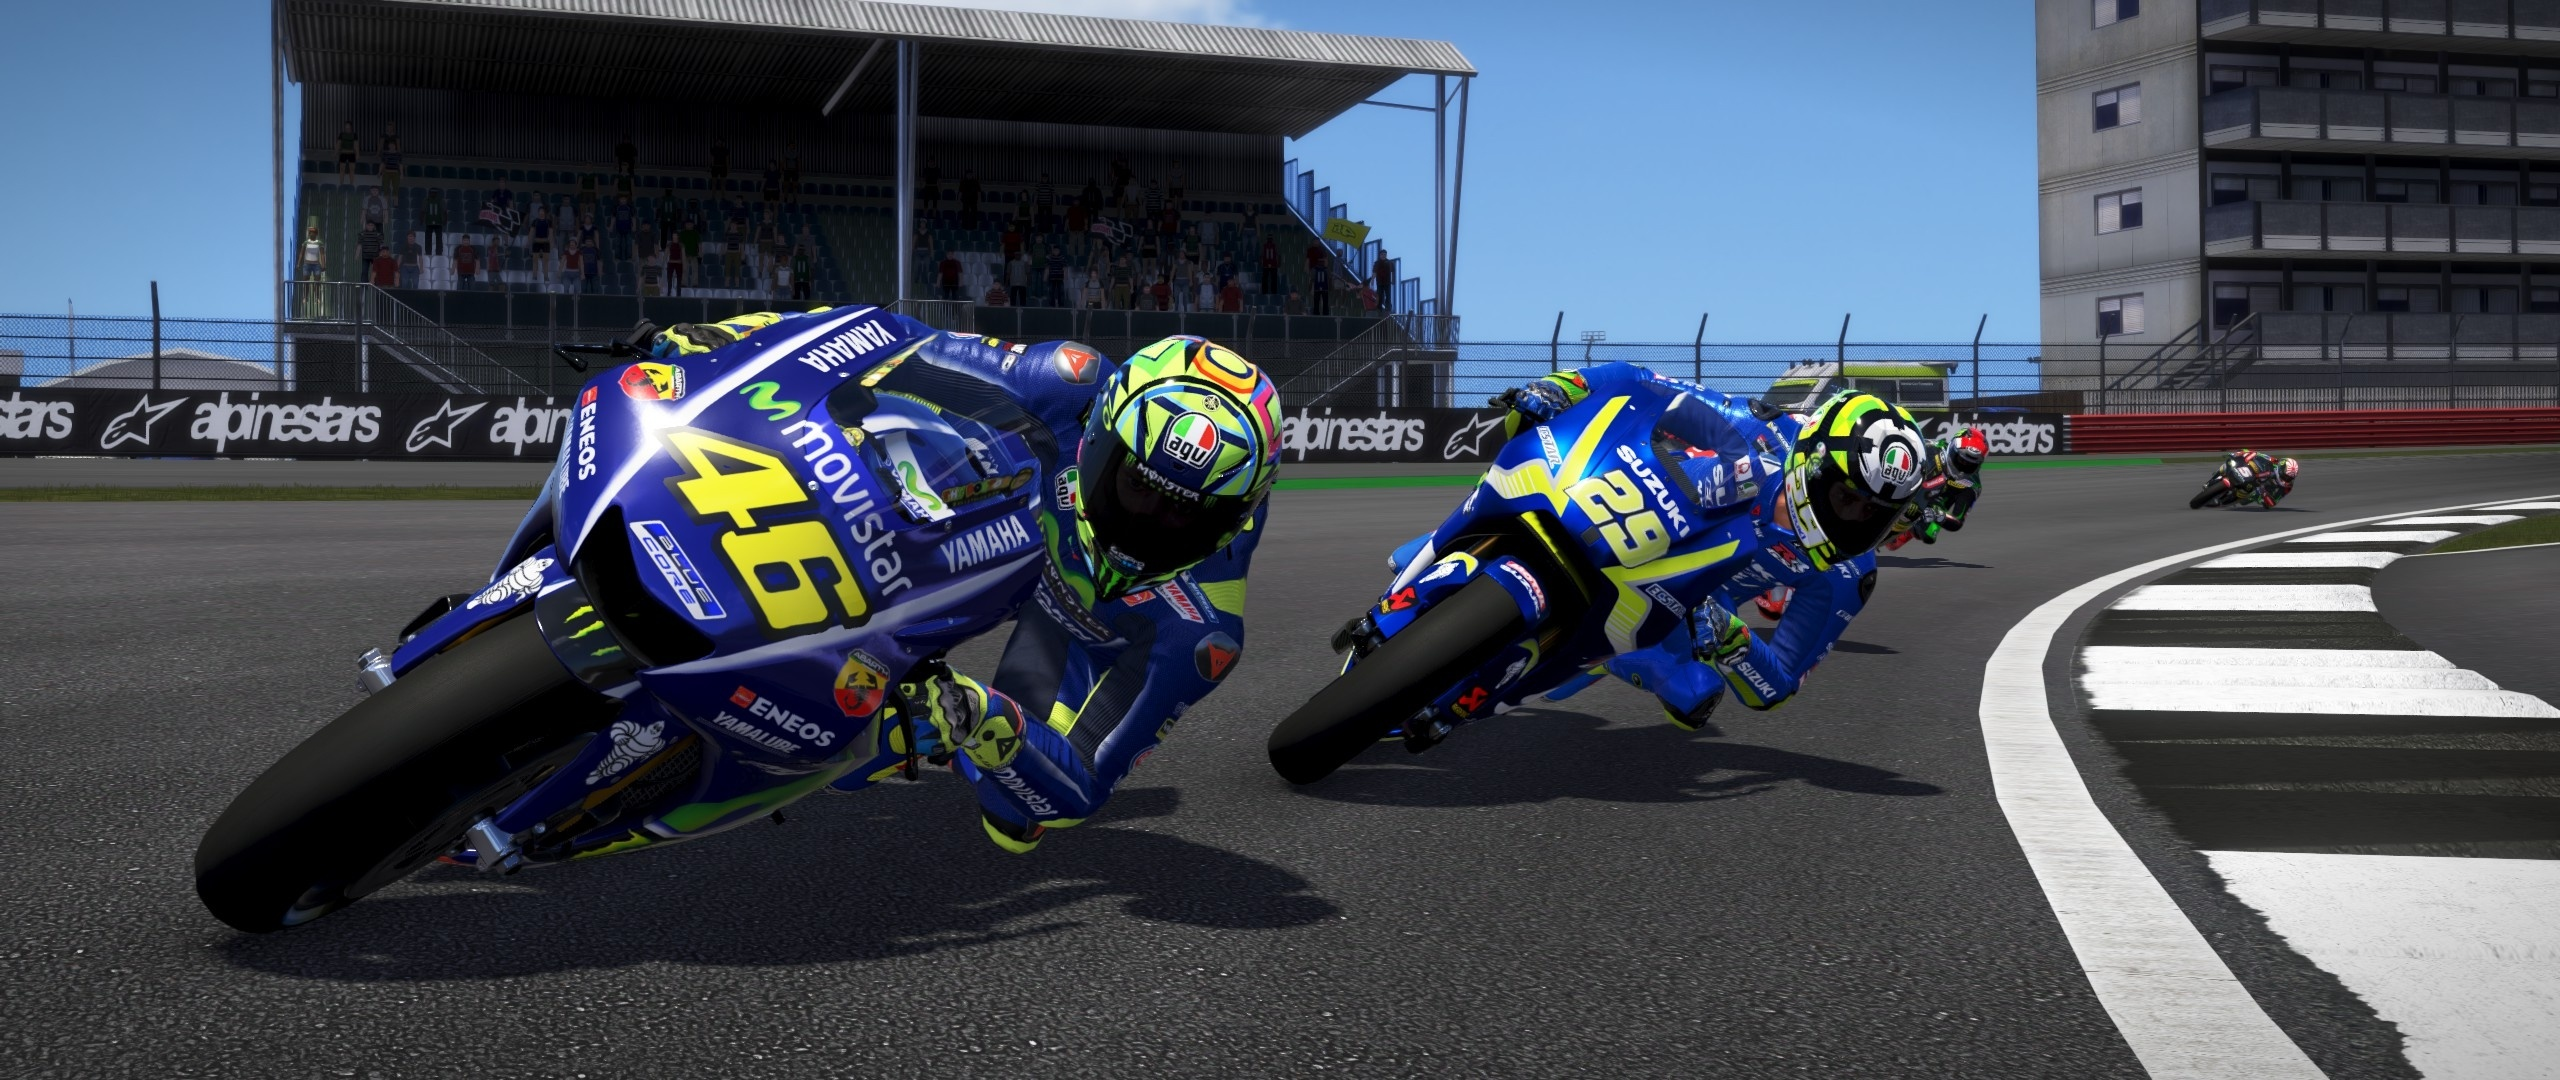 What is the best racing game on Android devices? - Quora